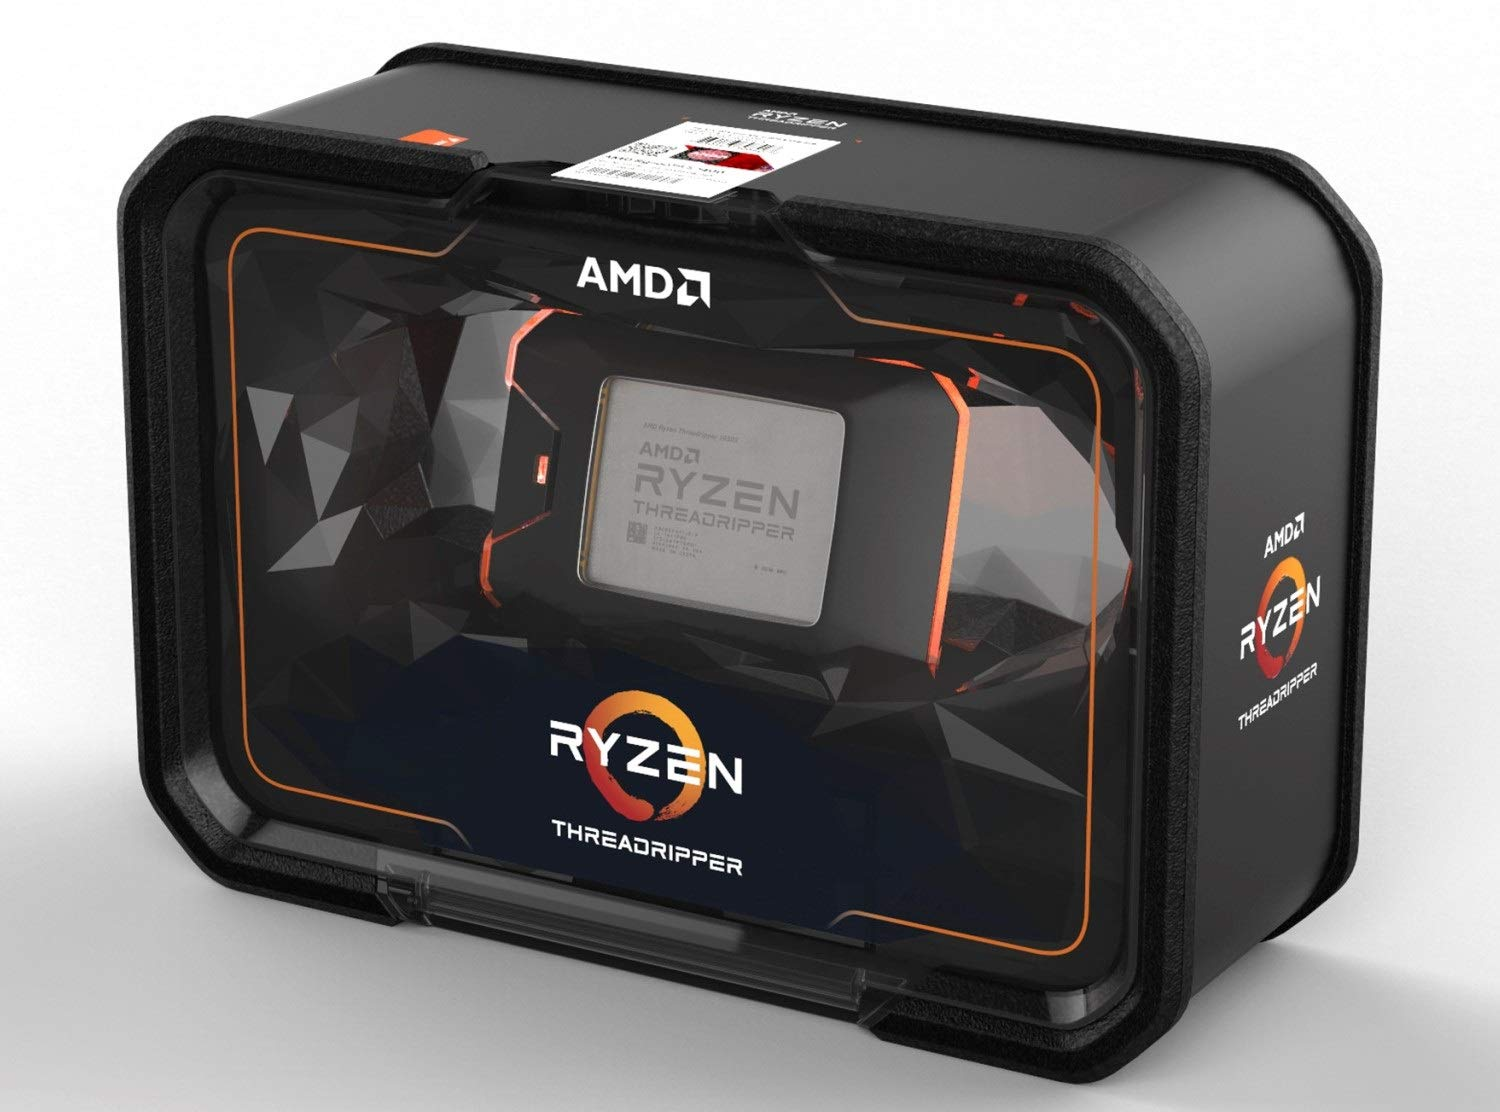 AMD Ryzen Threadripper 2990WX Processor (YD299XAZAFWOF)